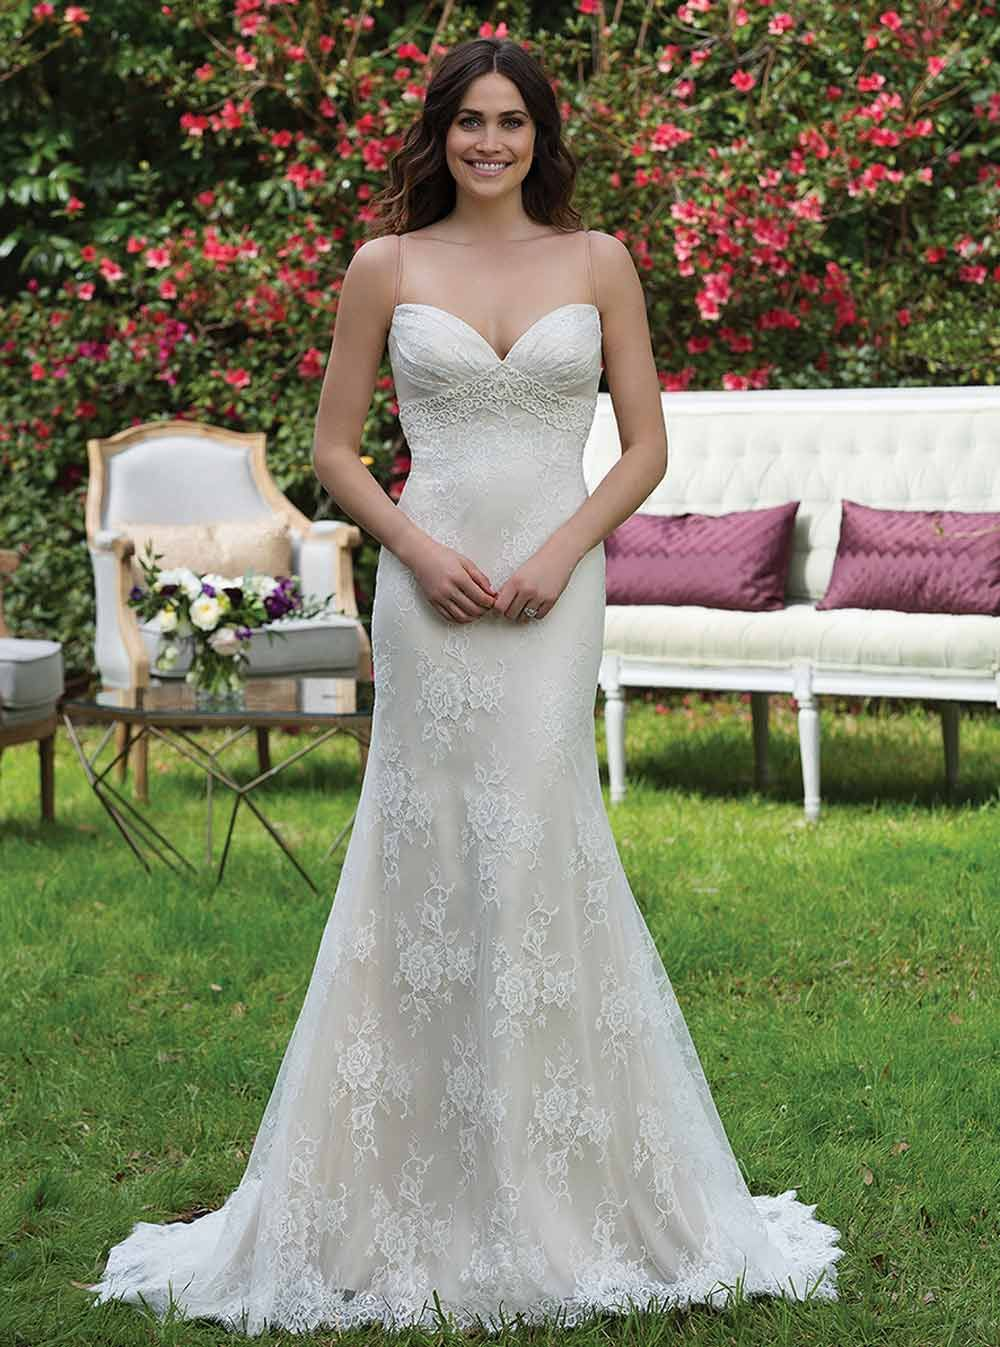 Figure flattering wedding dresses for every type of body shape